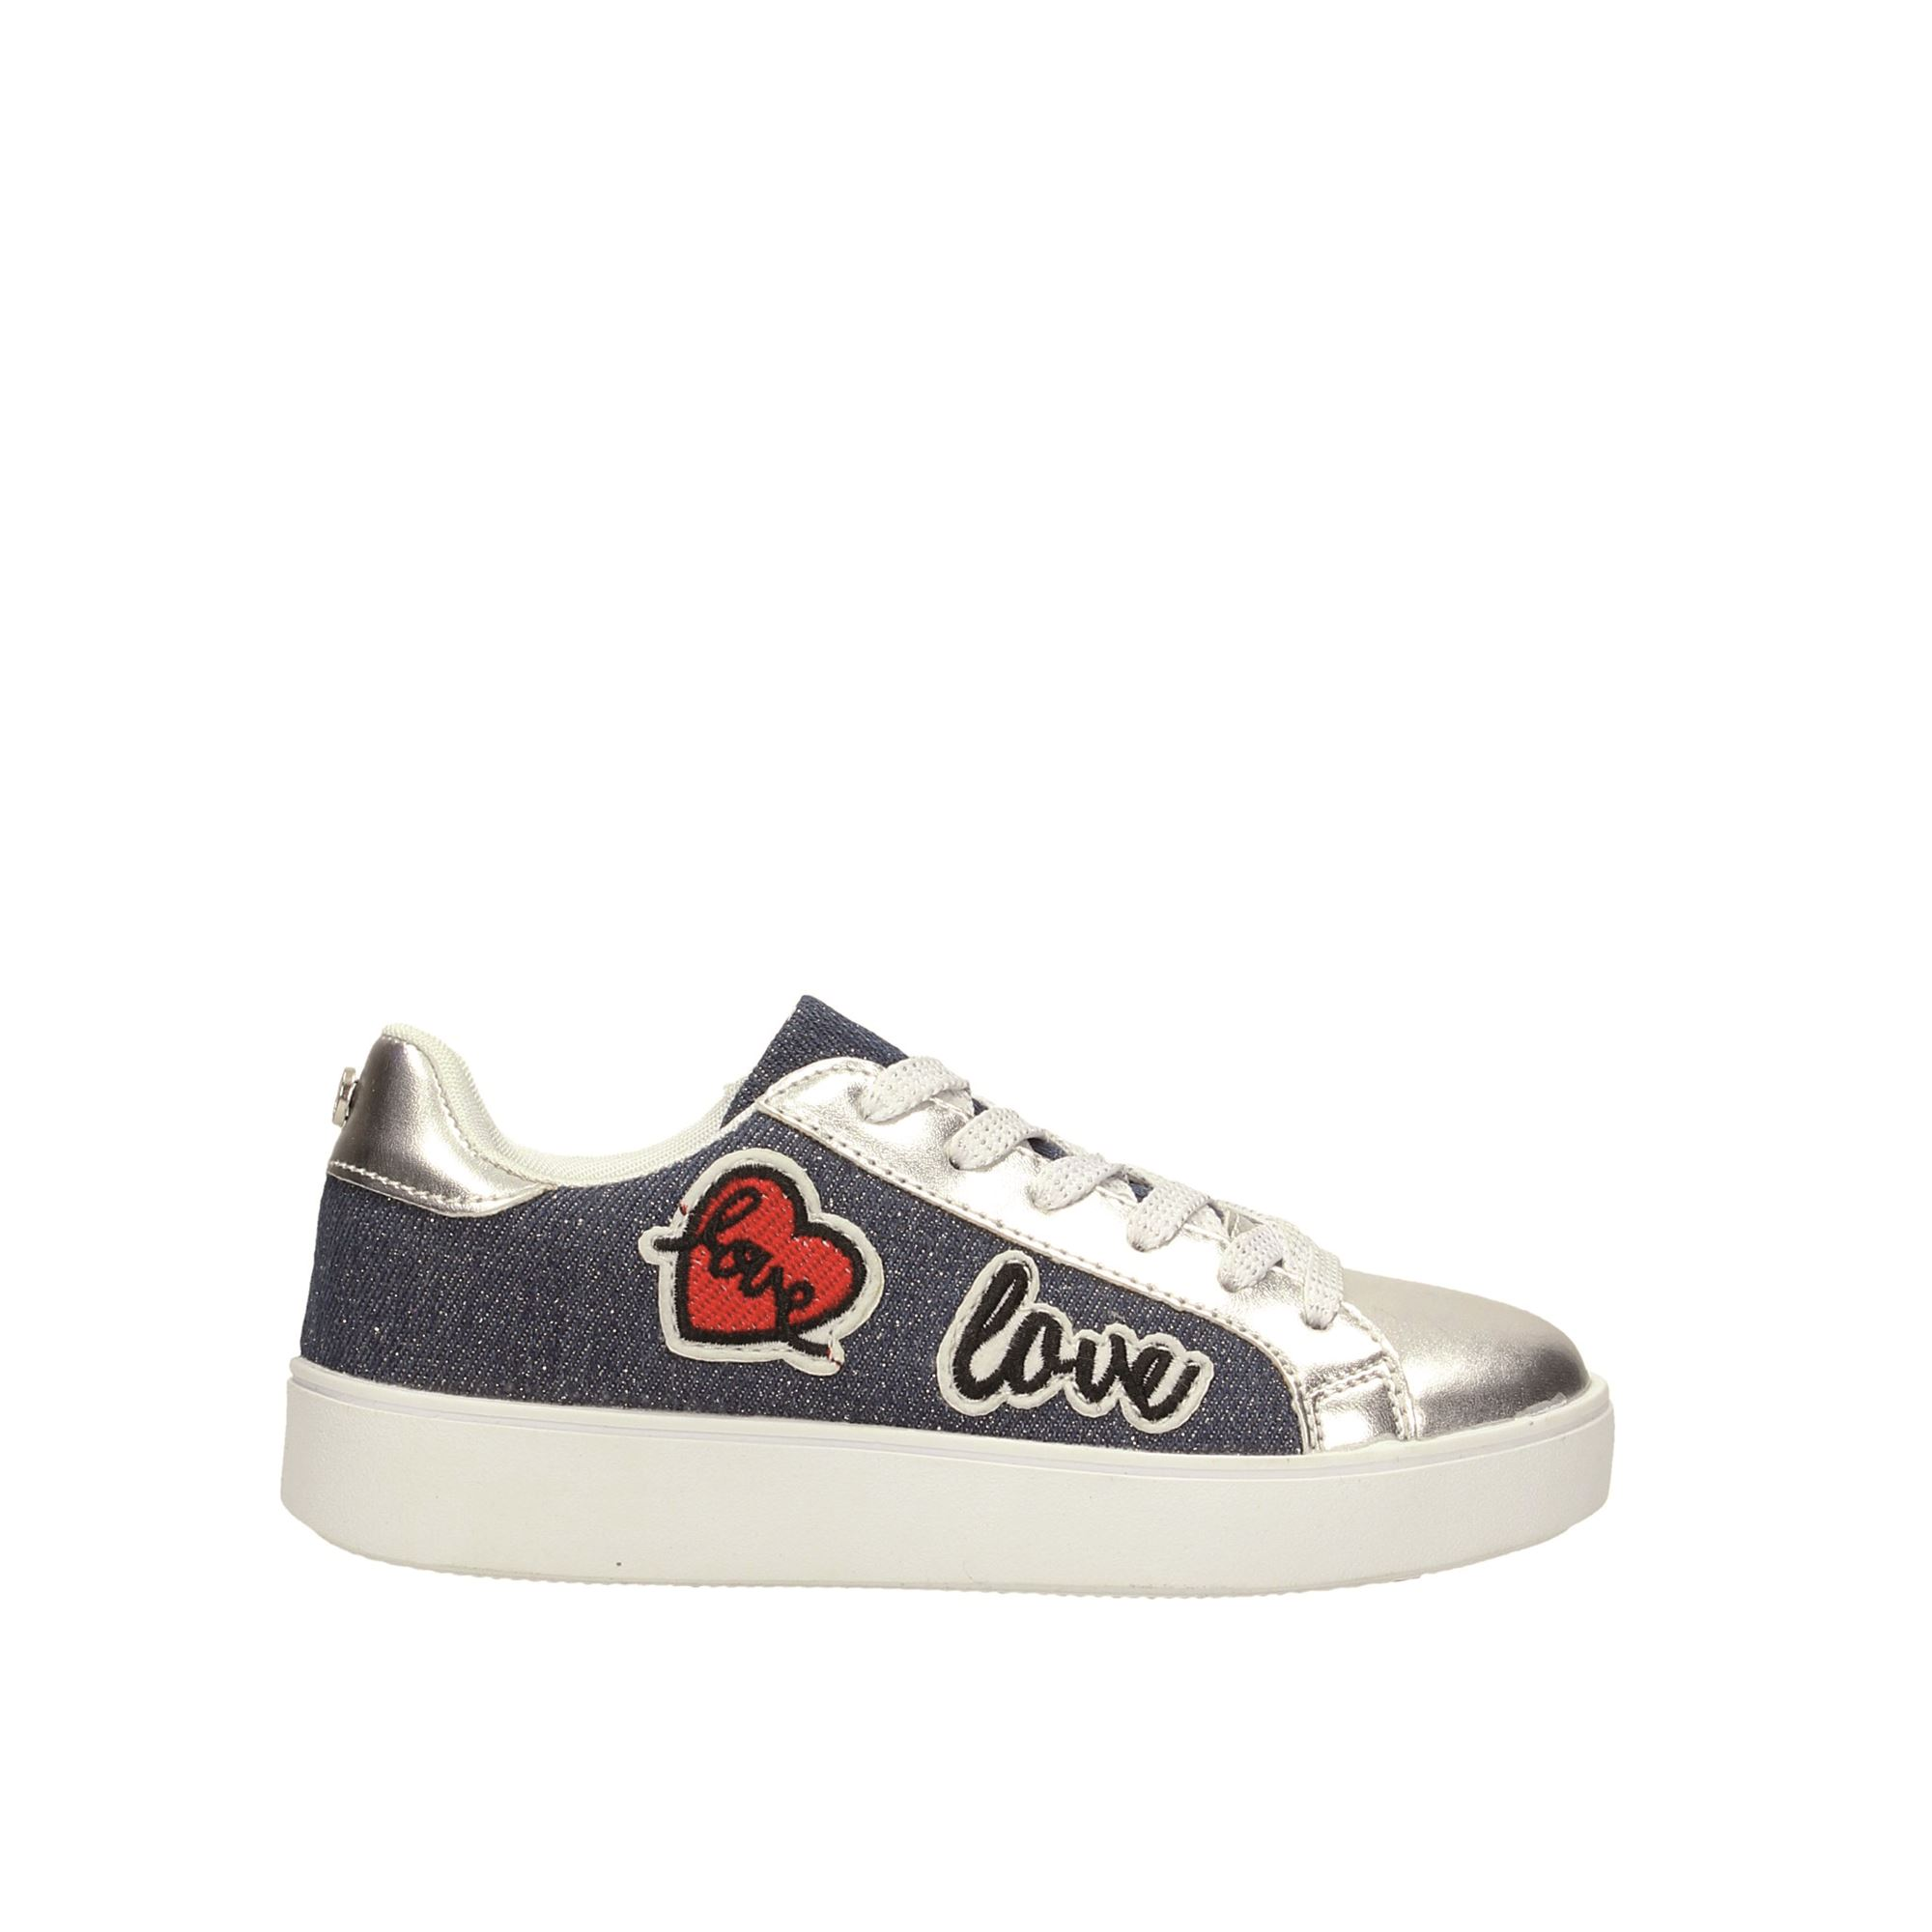 Tata Italia Shoes Junior Sneakers Jeans TJ3-18-3